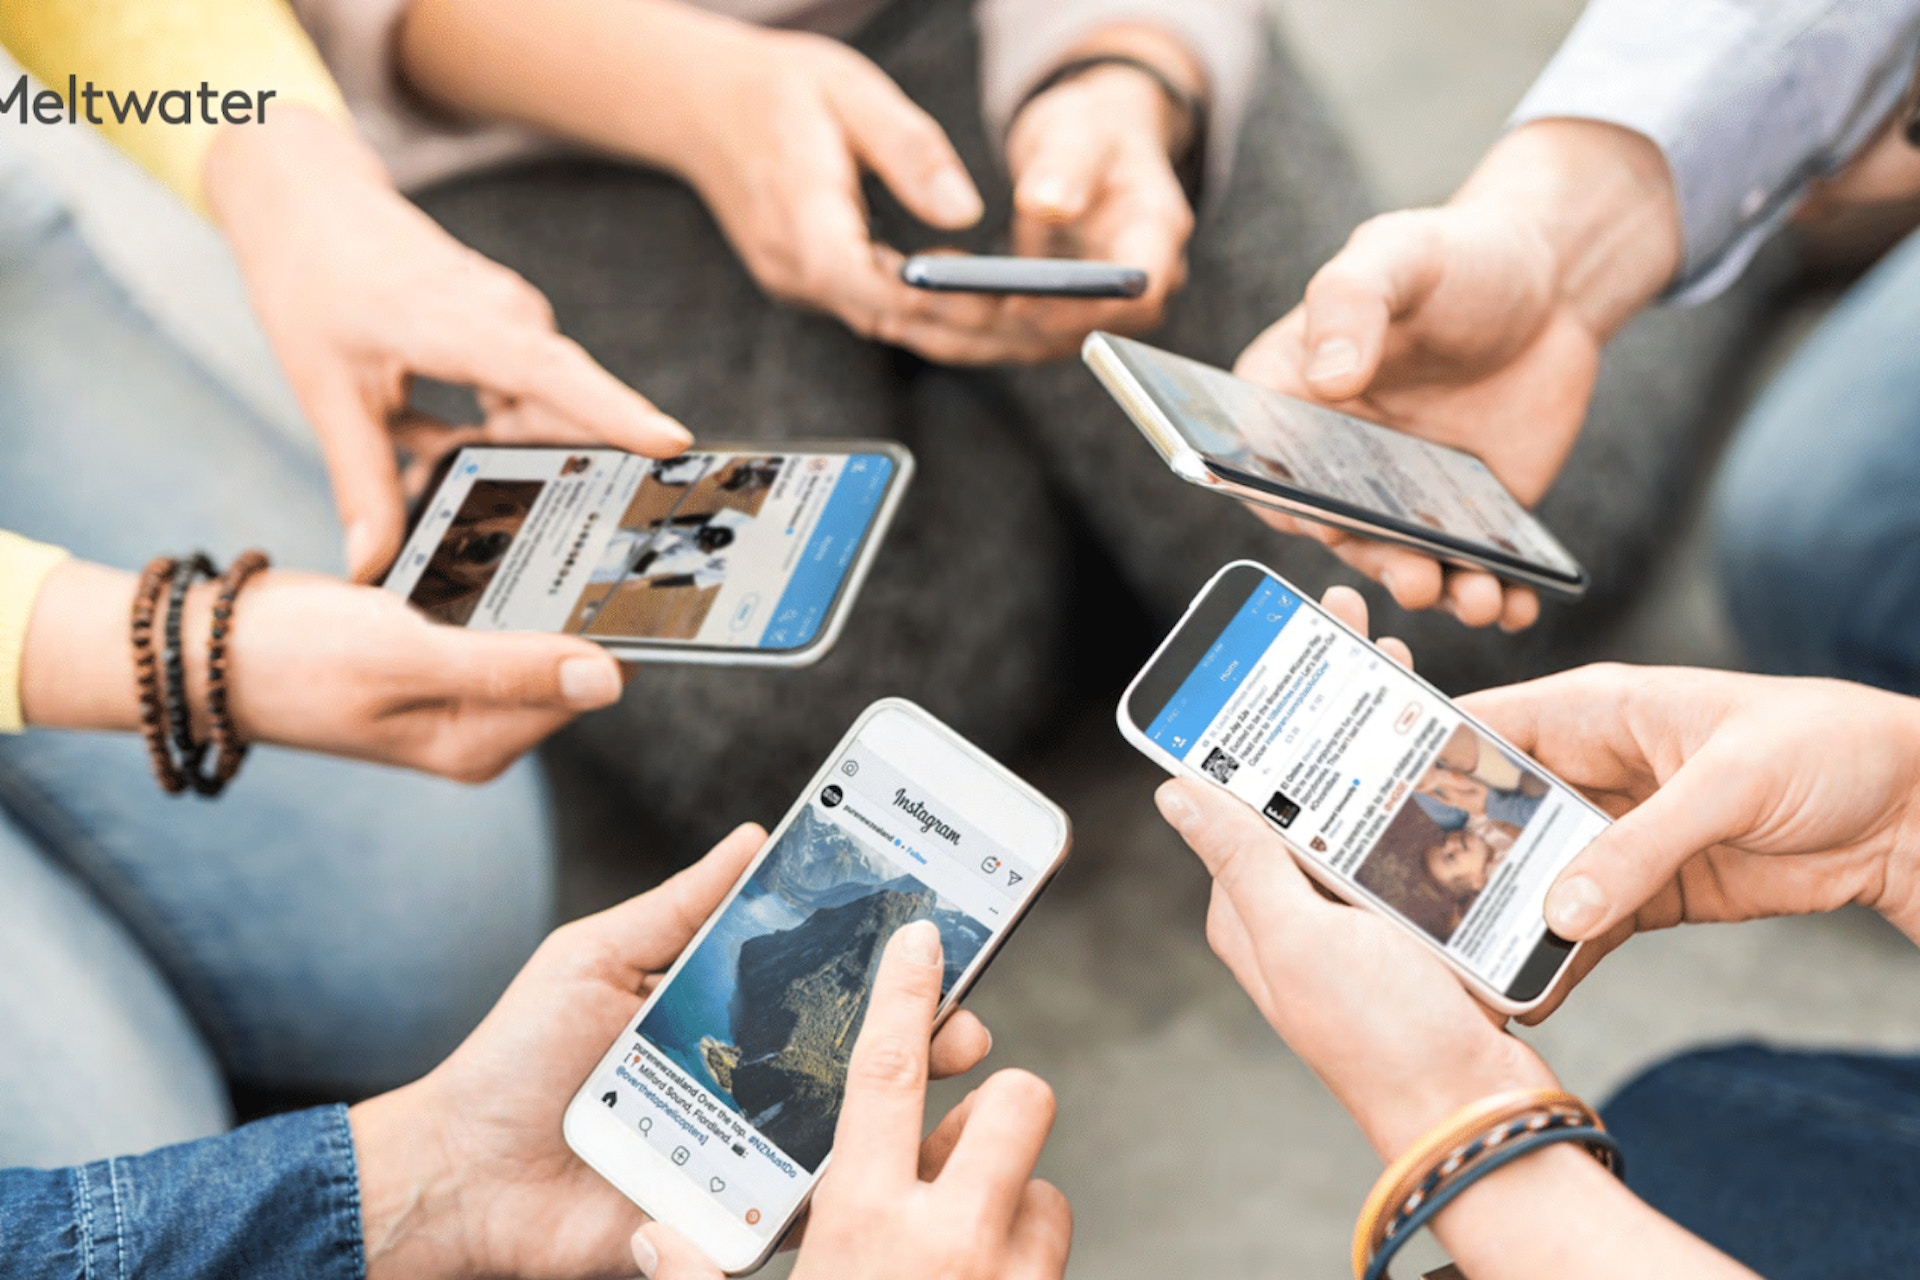 people holding up their smartphones with social media in a circle